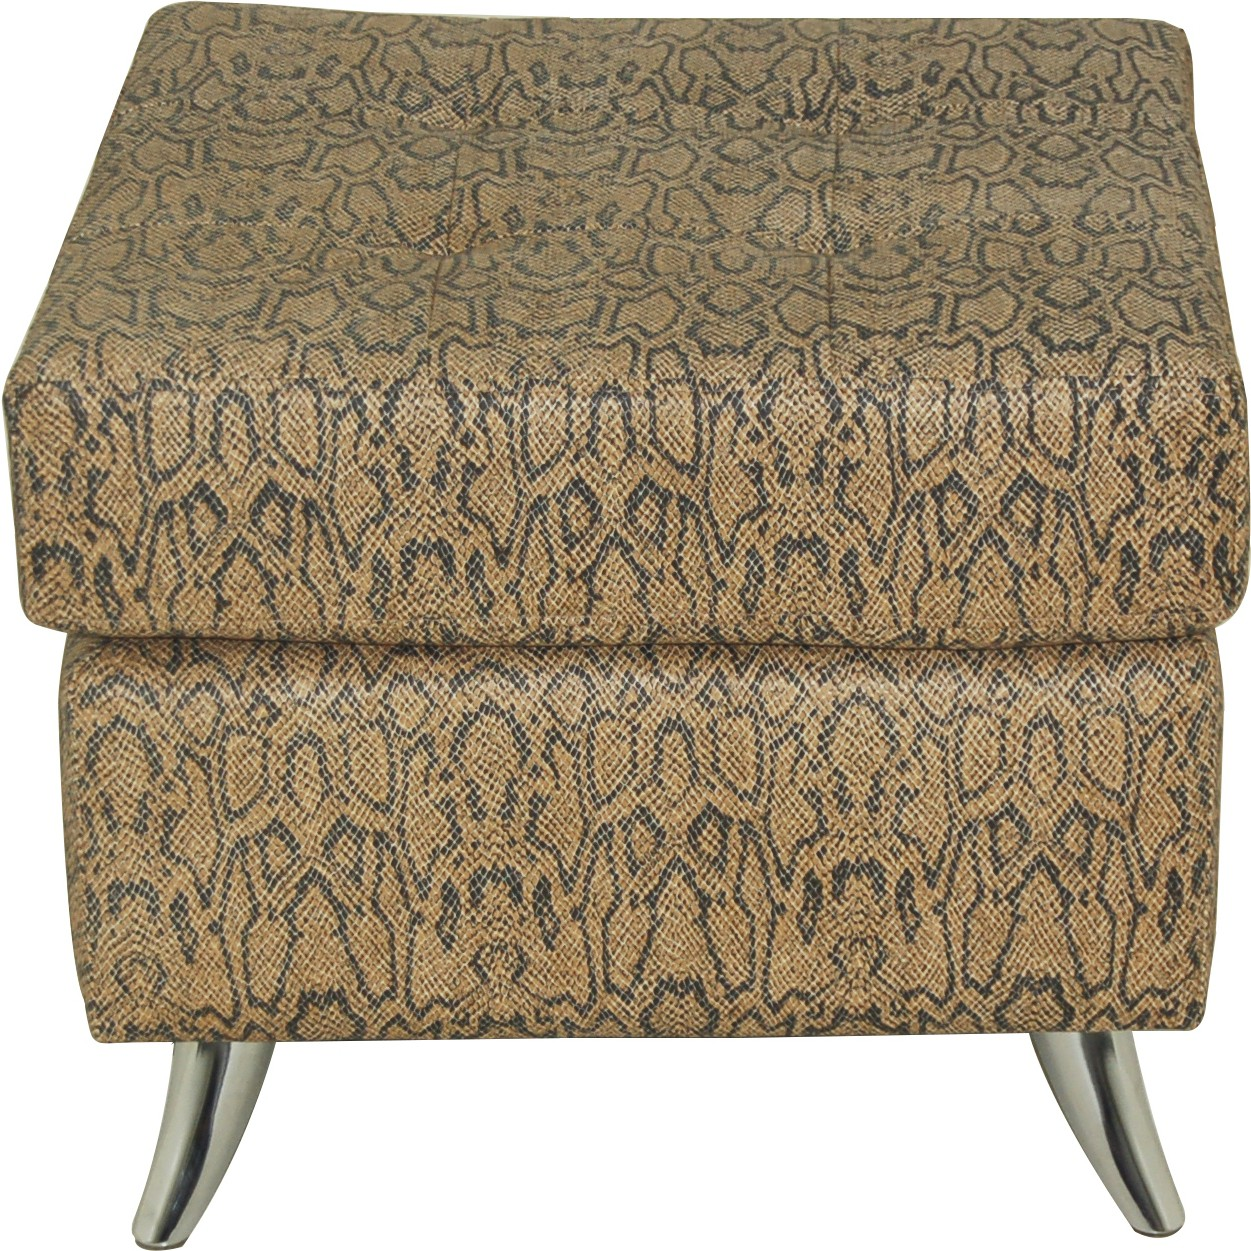 View Furnitech Engineered Wood Standard Ottoman(Finish Color - Brown) Furniture (Furnitech)